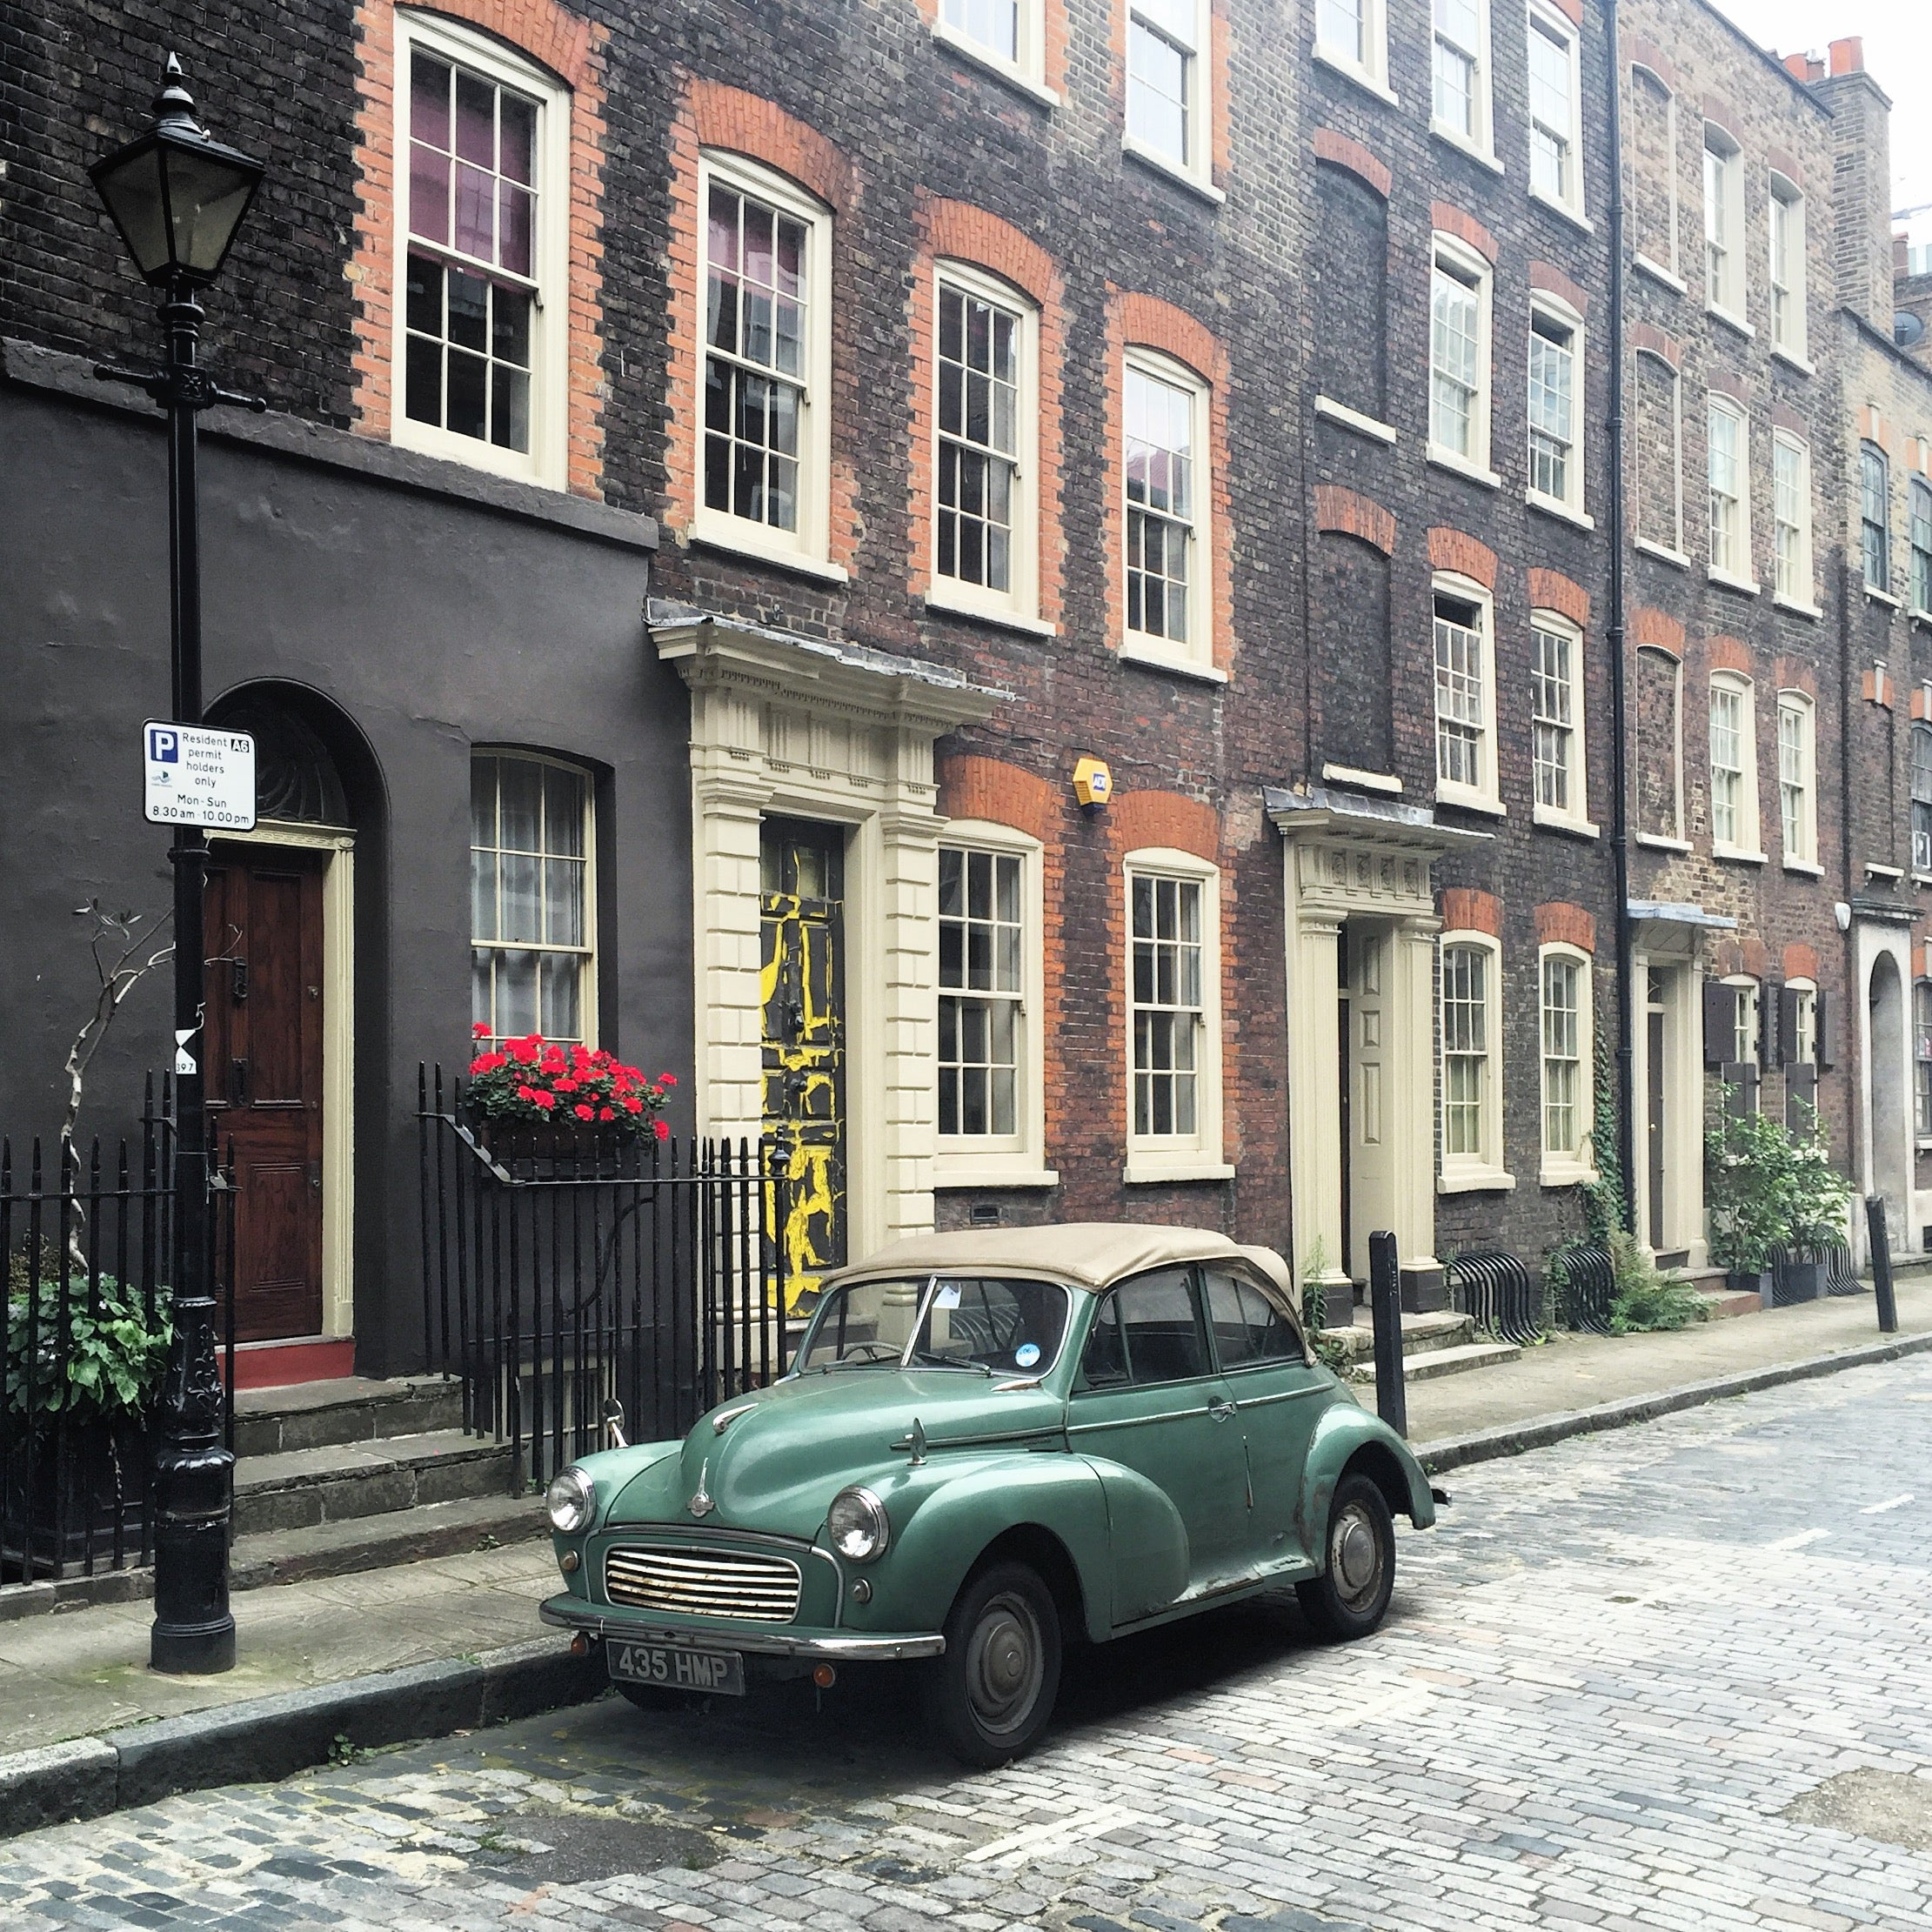 Green Car on the streets of London